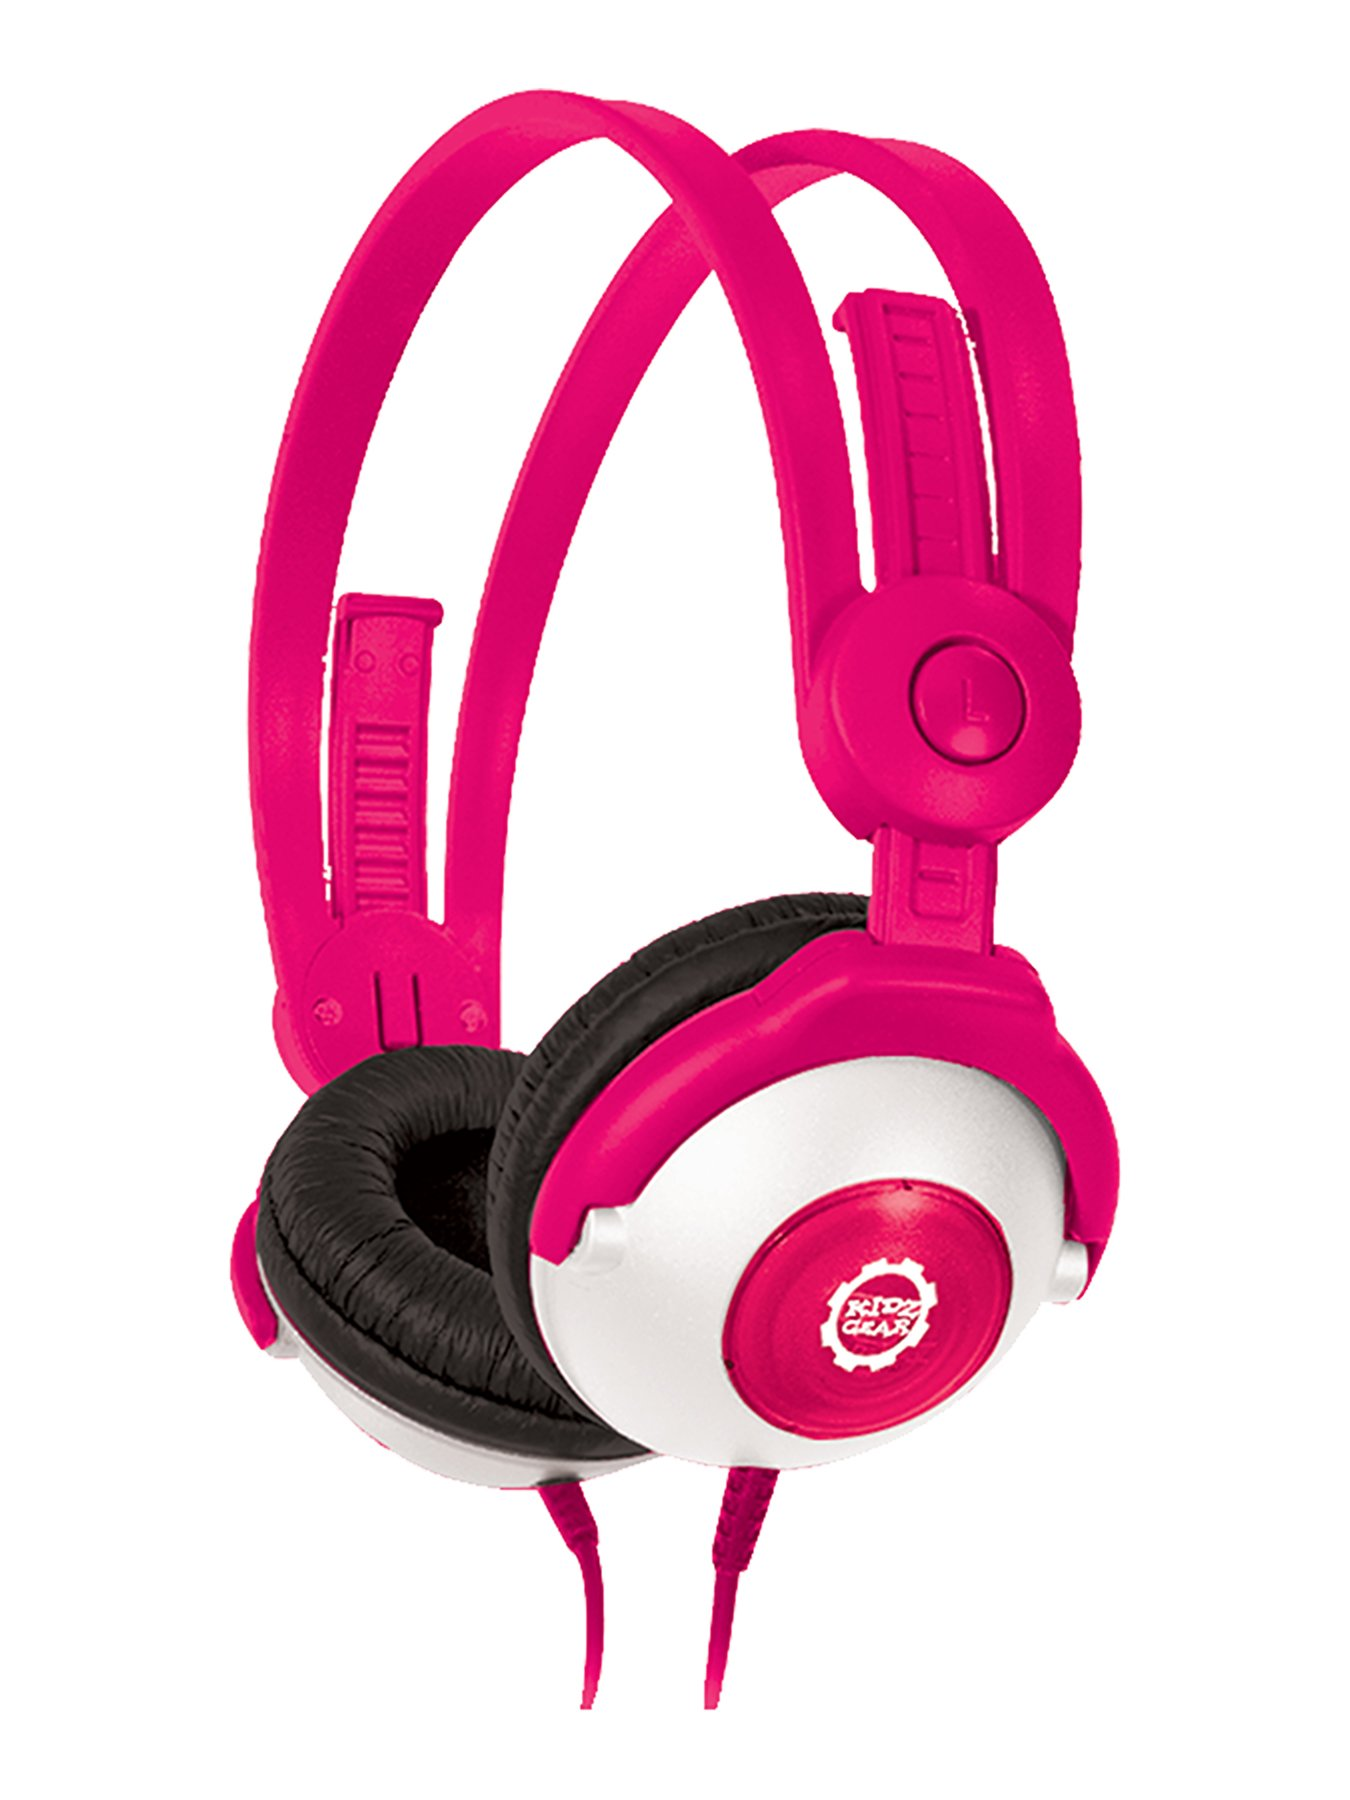 Kidz Gear Wired Headphones For Kids – Pink by Kidz Gear